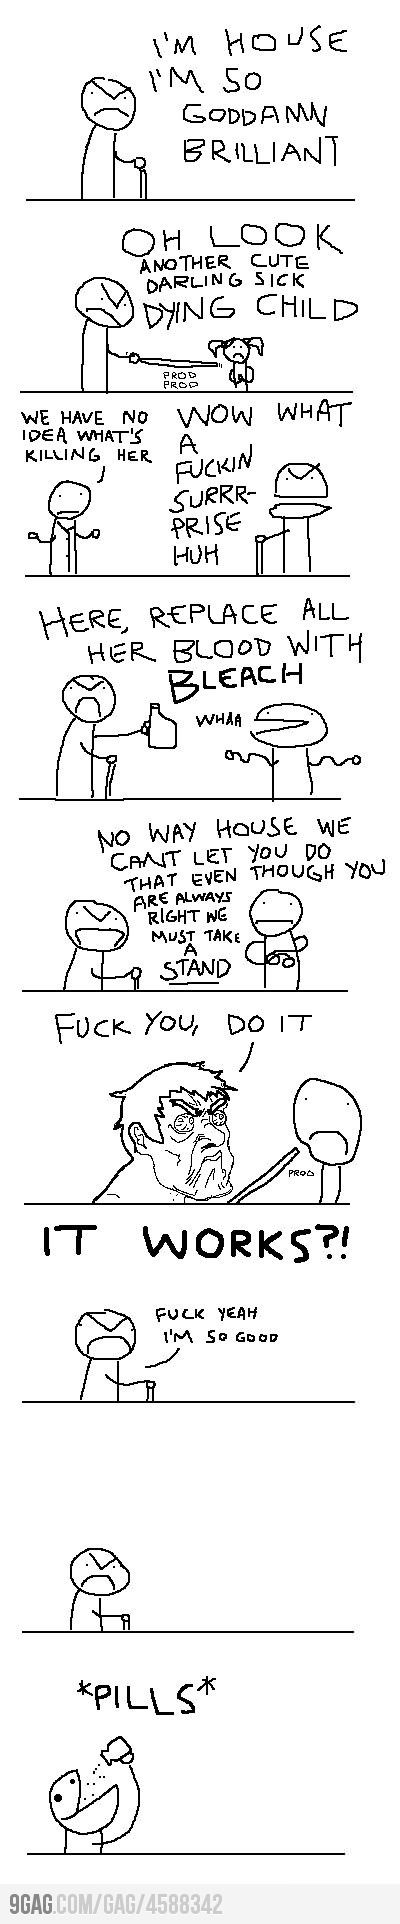 i laughed for like an hour. 8 seasons of house, md summarized in nine panels. hahaha.